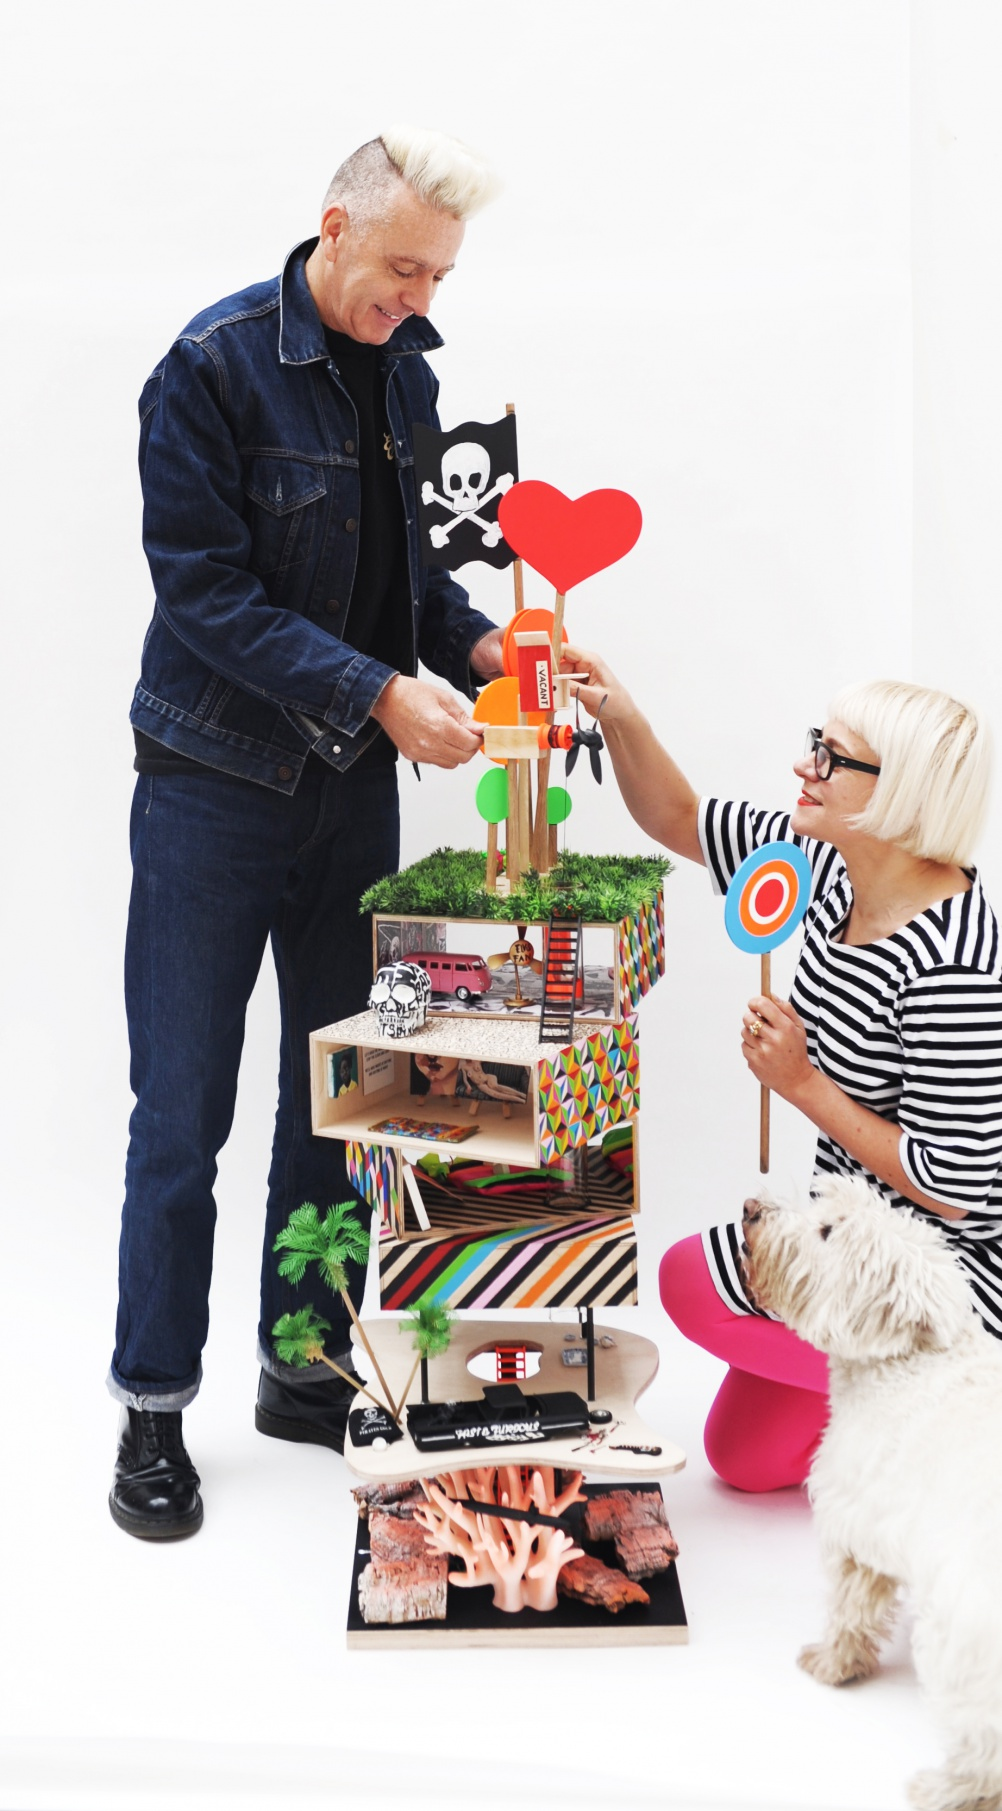 Morag Myerscough and Luke Morgan - founders of Supergroup